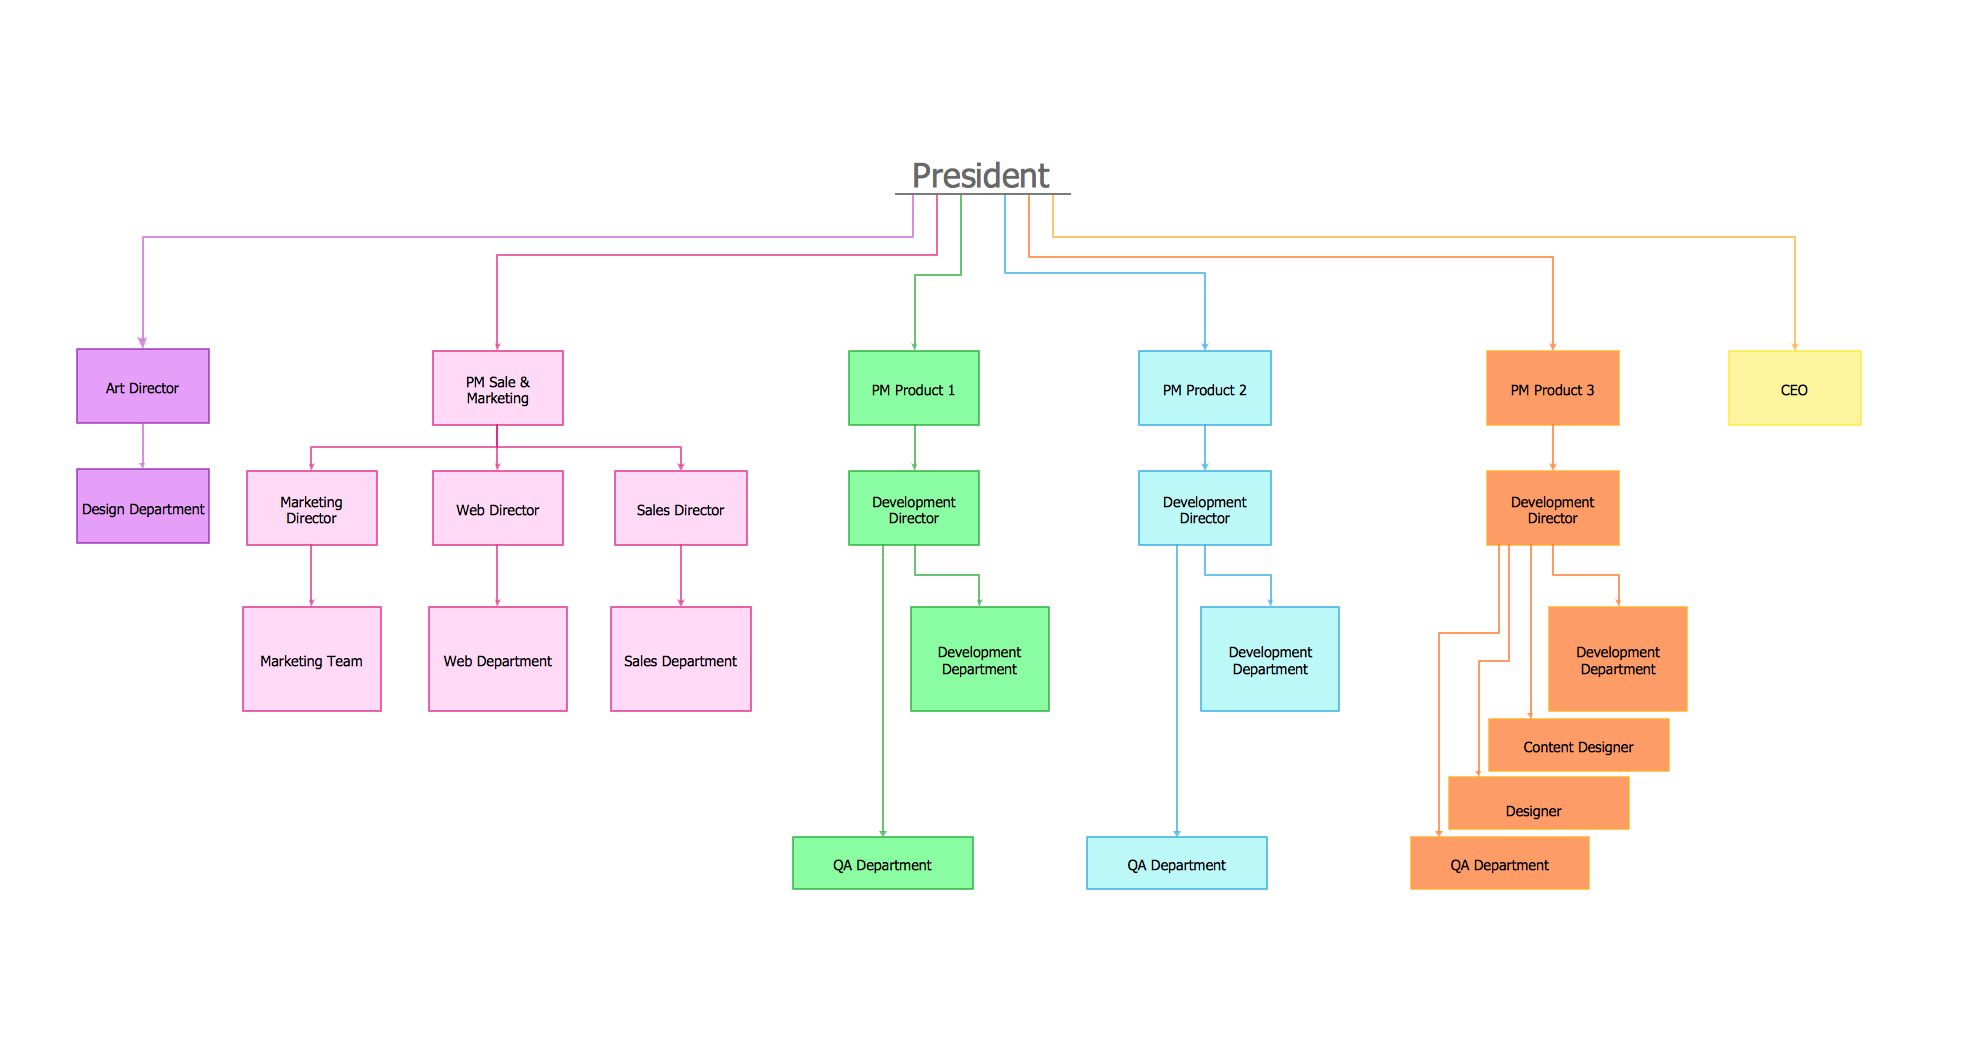 template for an organizational chart - business process management how to create management